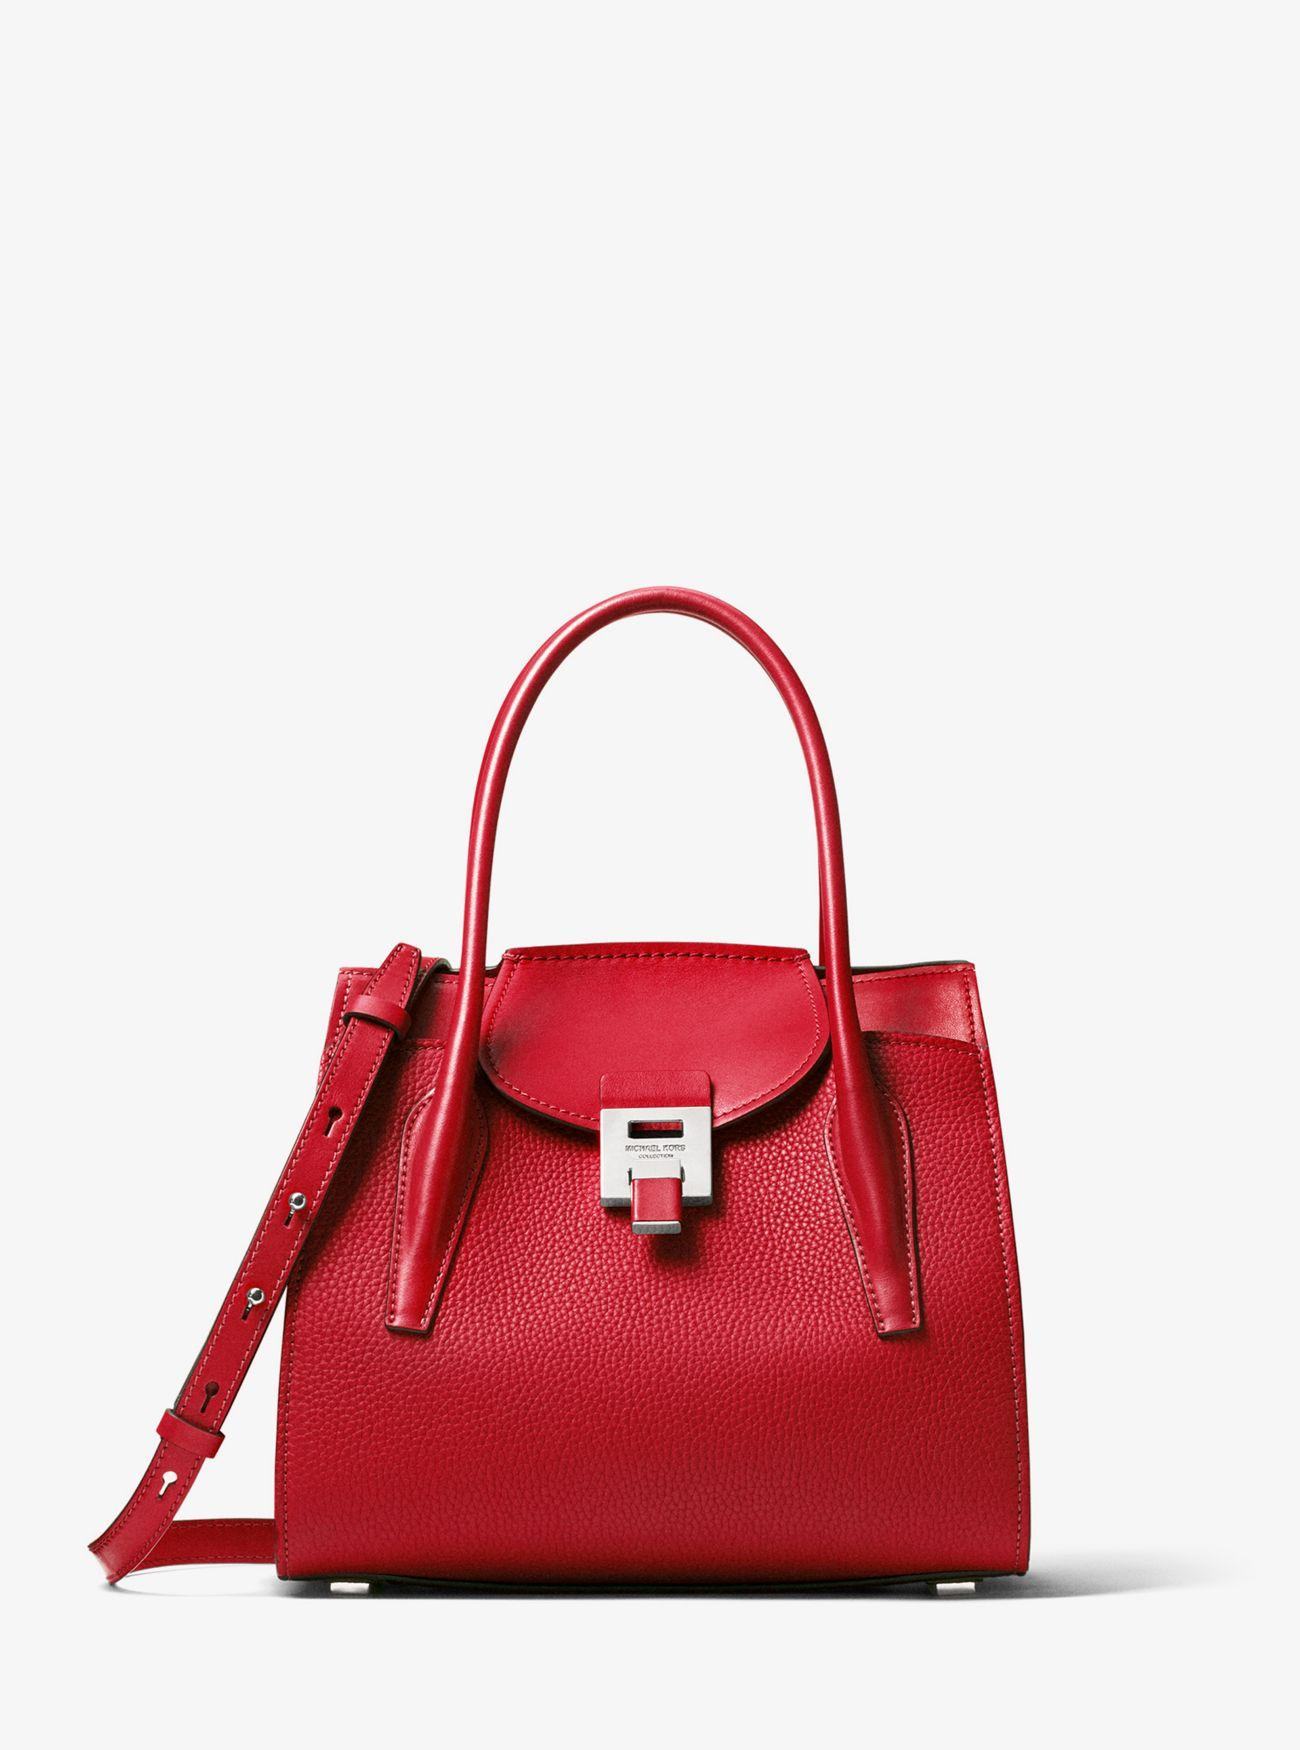 02a9076d38c912 Michael Kors. Women's Red Bancroft Medium Pebbled Calf Leather Satchel